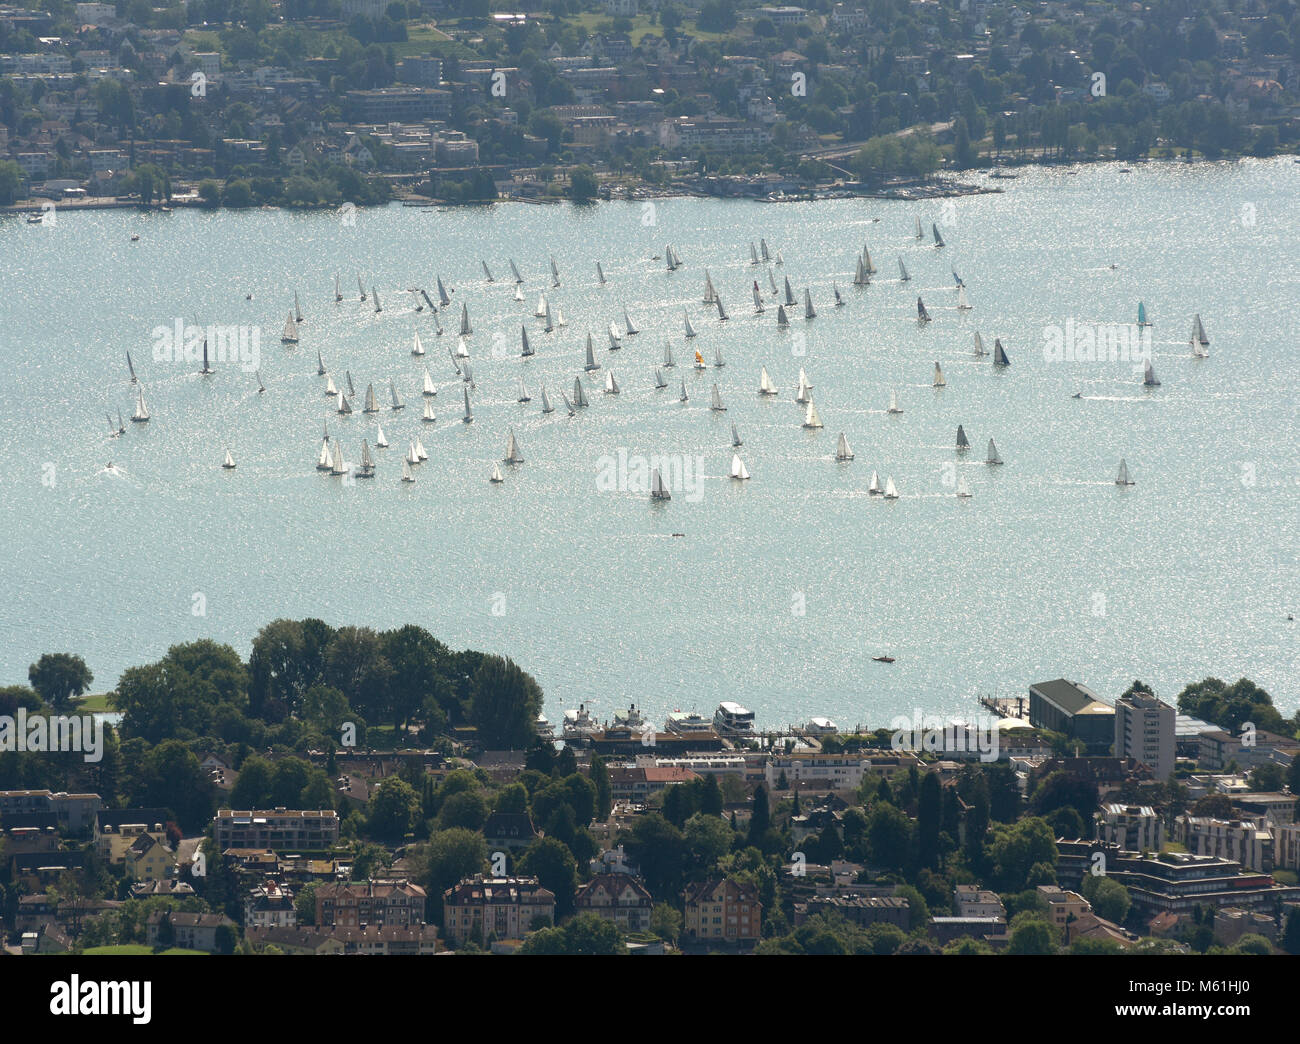 Yachts and boats on lake of Zurich top view from Uetliberg in Zurich, Switzerland - Stock Image